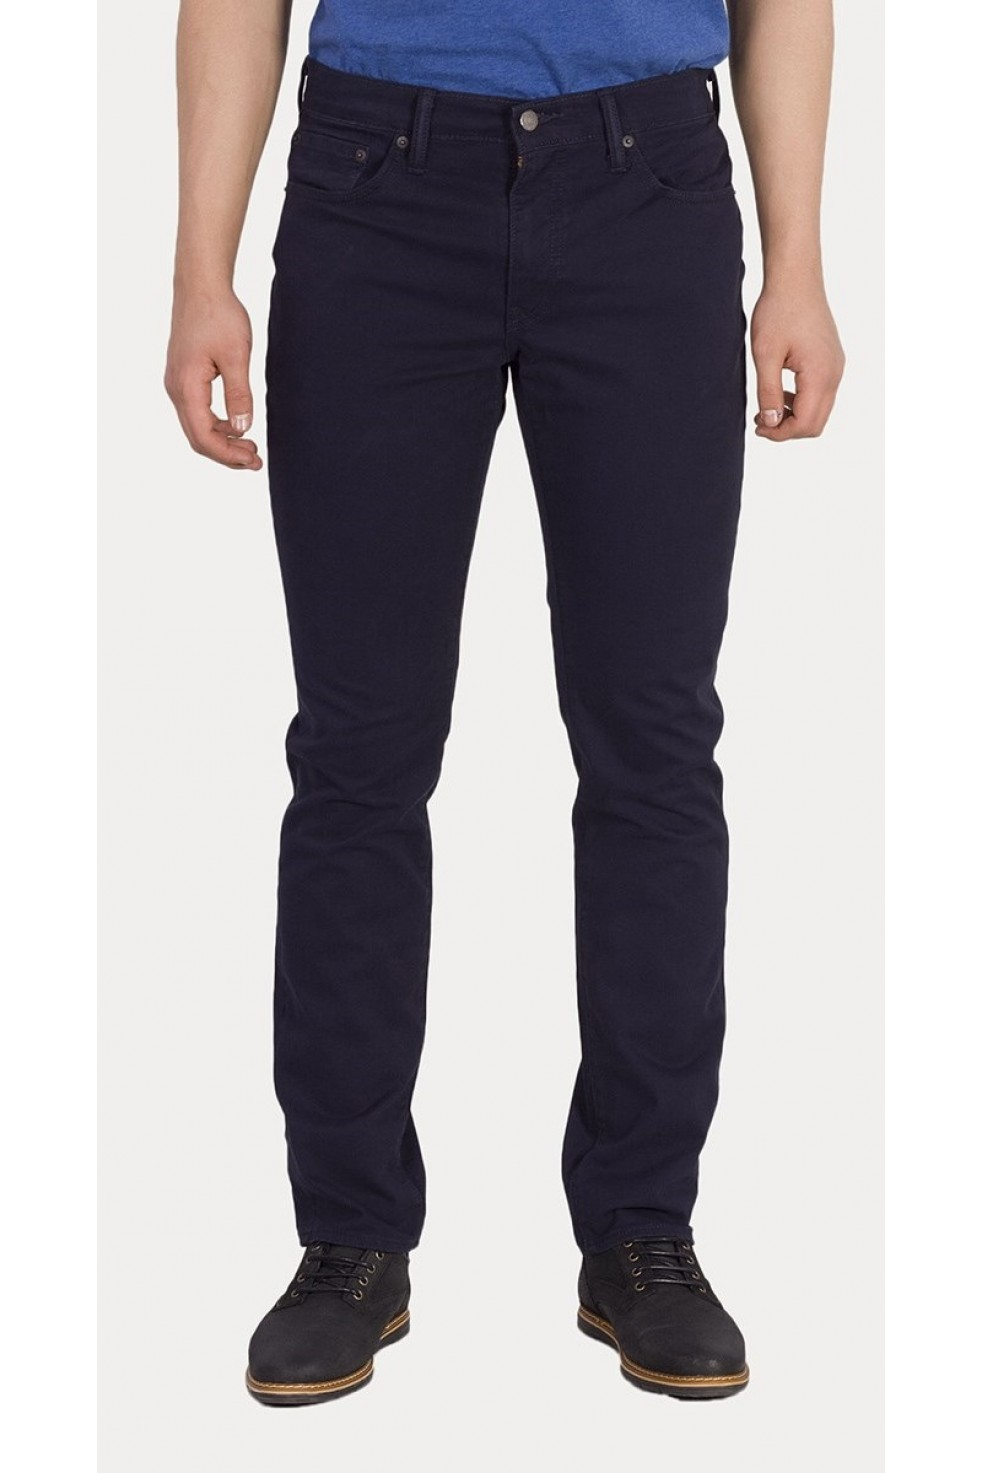 Levis Erkek Chino Pantolon 511 Slim Fit 04511-2617